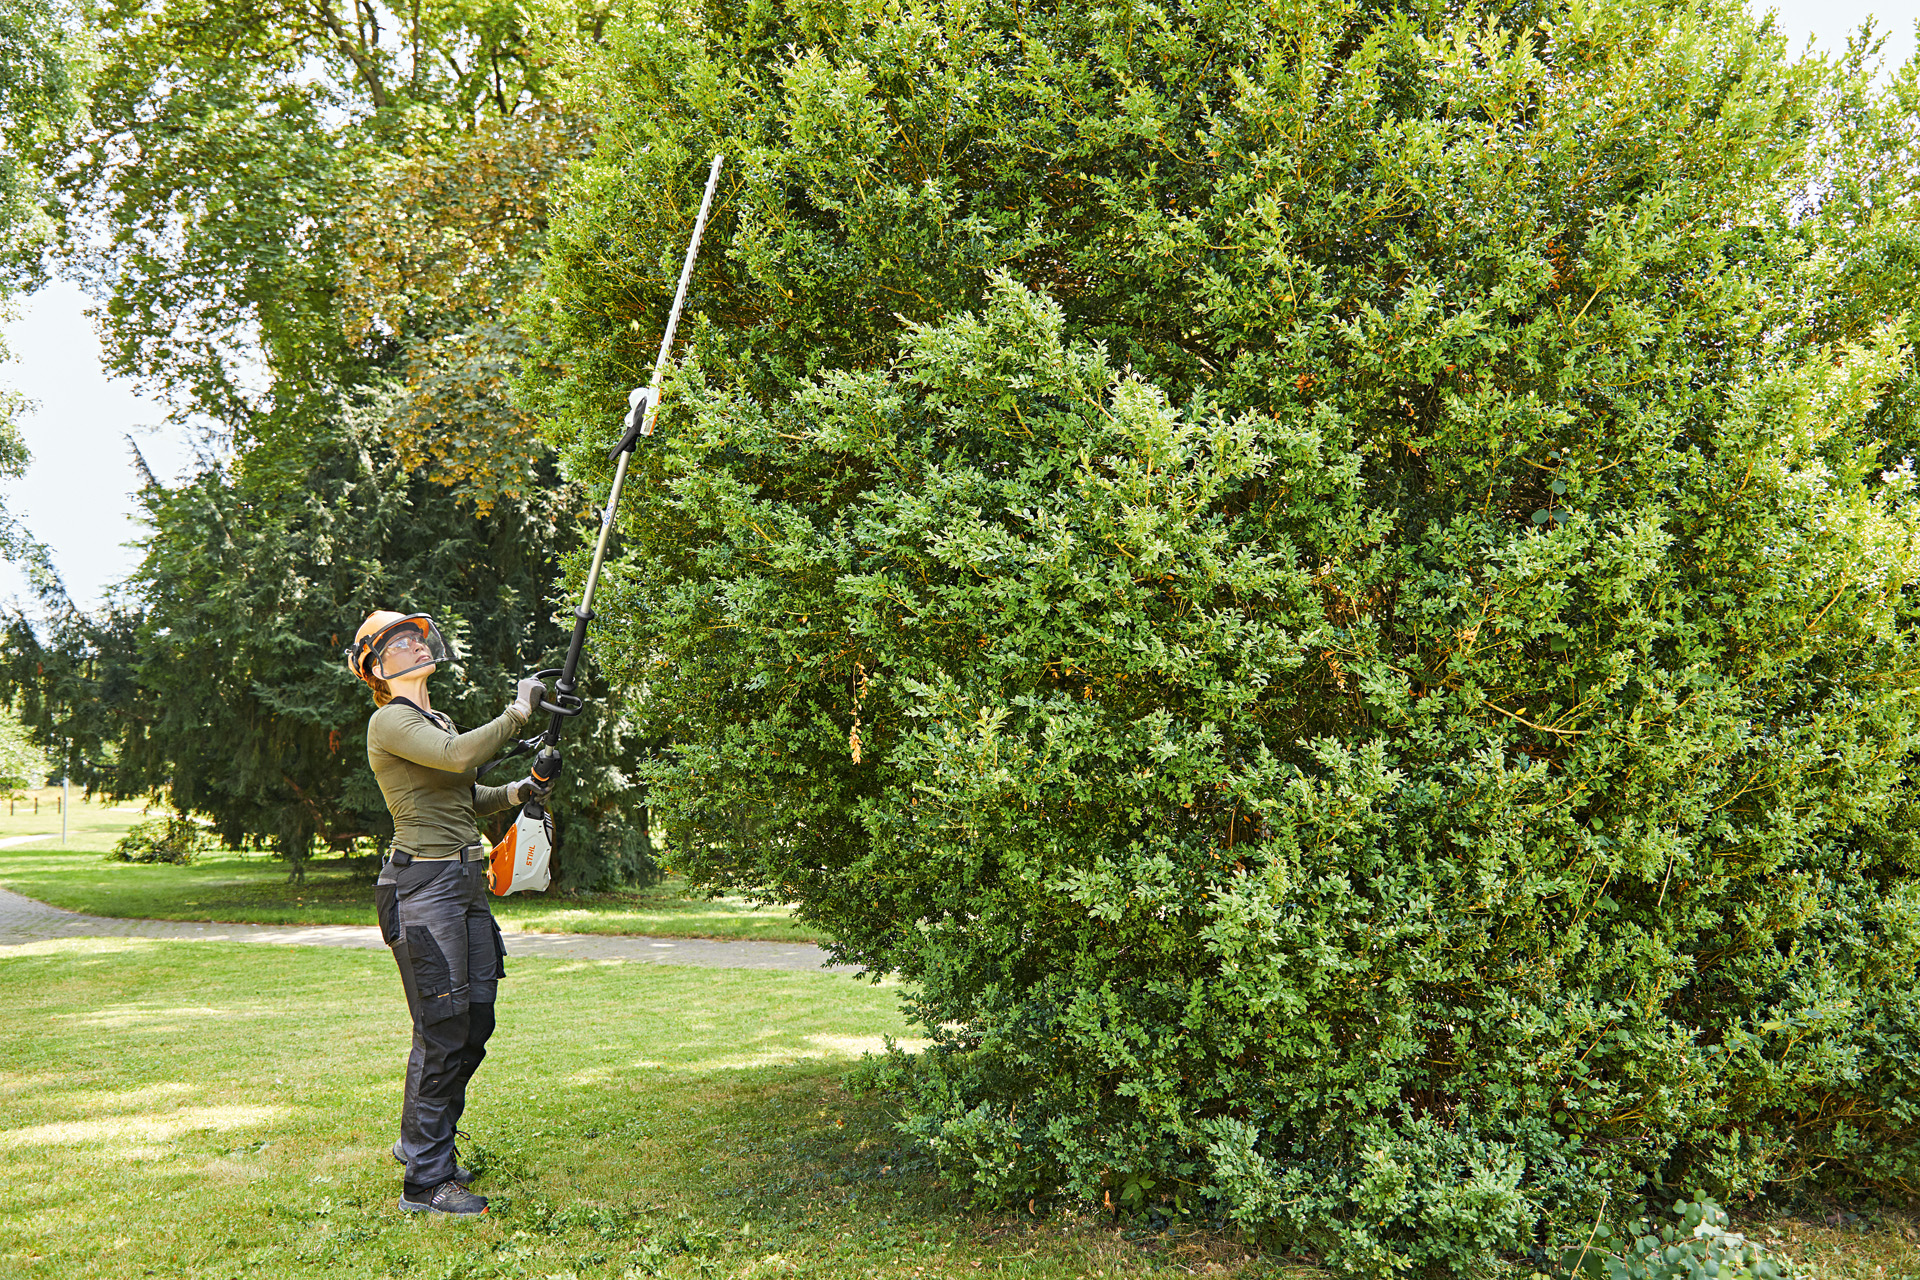 STIHL LAUNCHES MOST POWERFUL CORDLESS LONG-REACH HEDGE TRIMMER